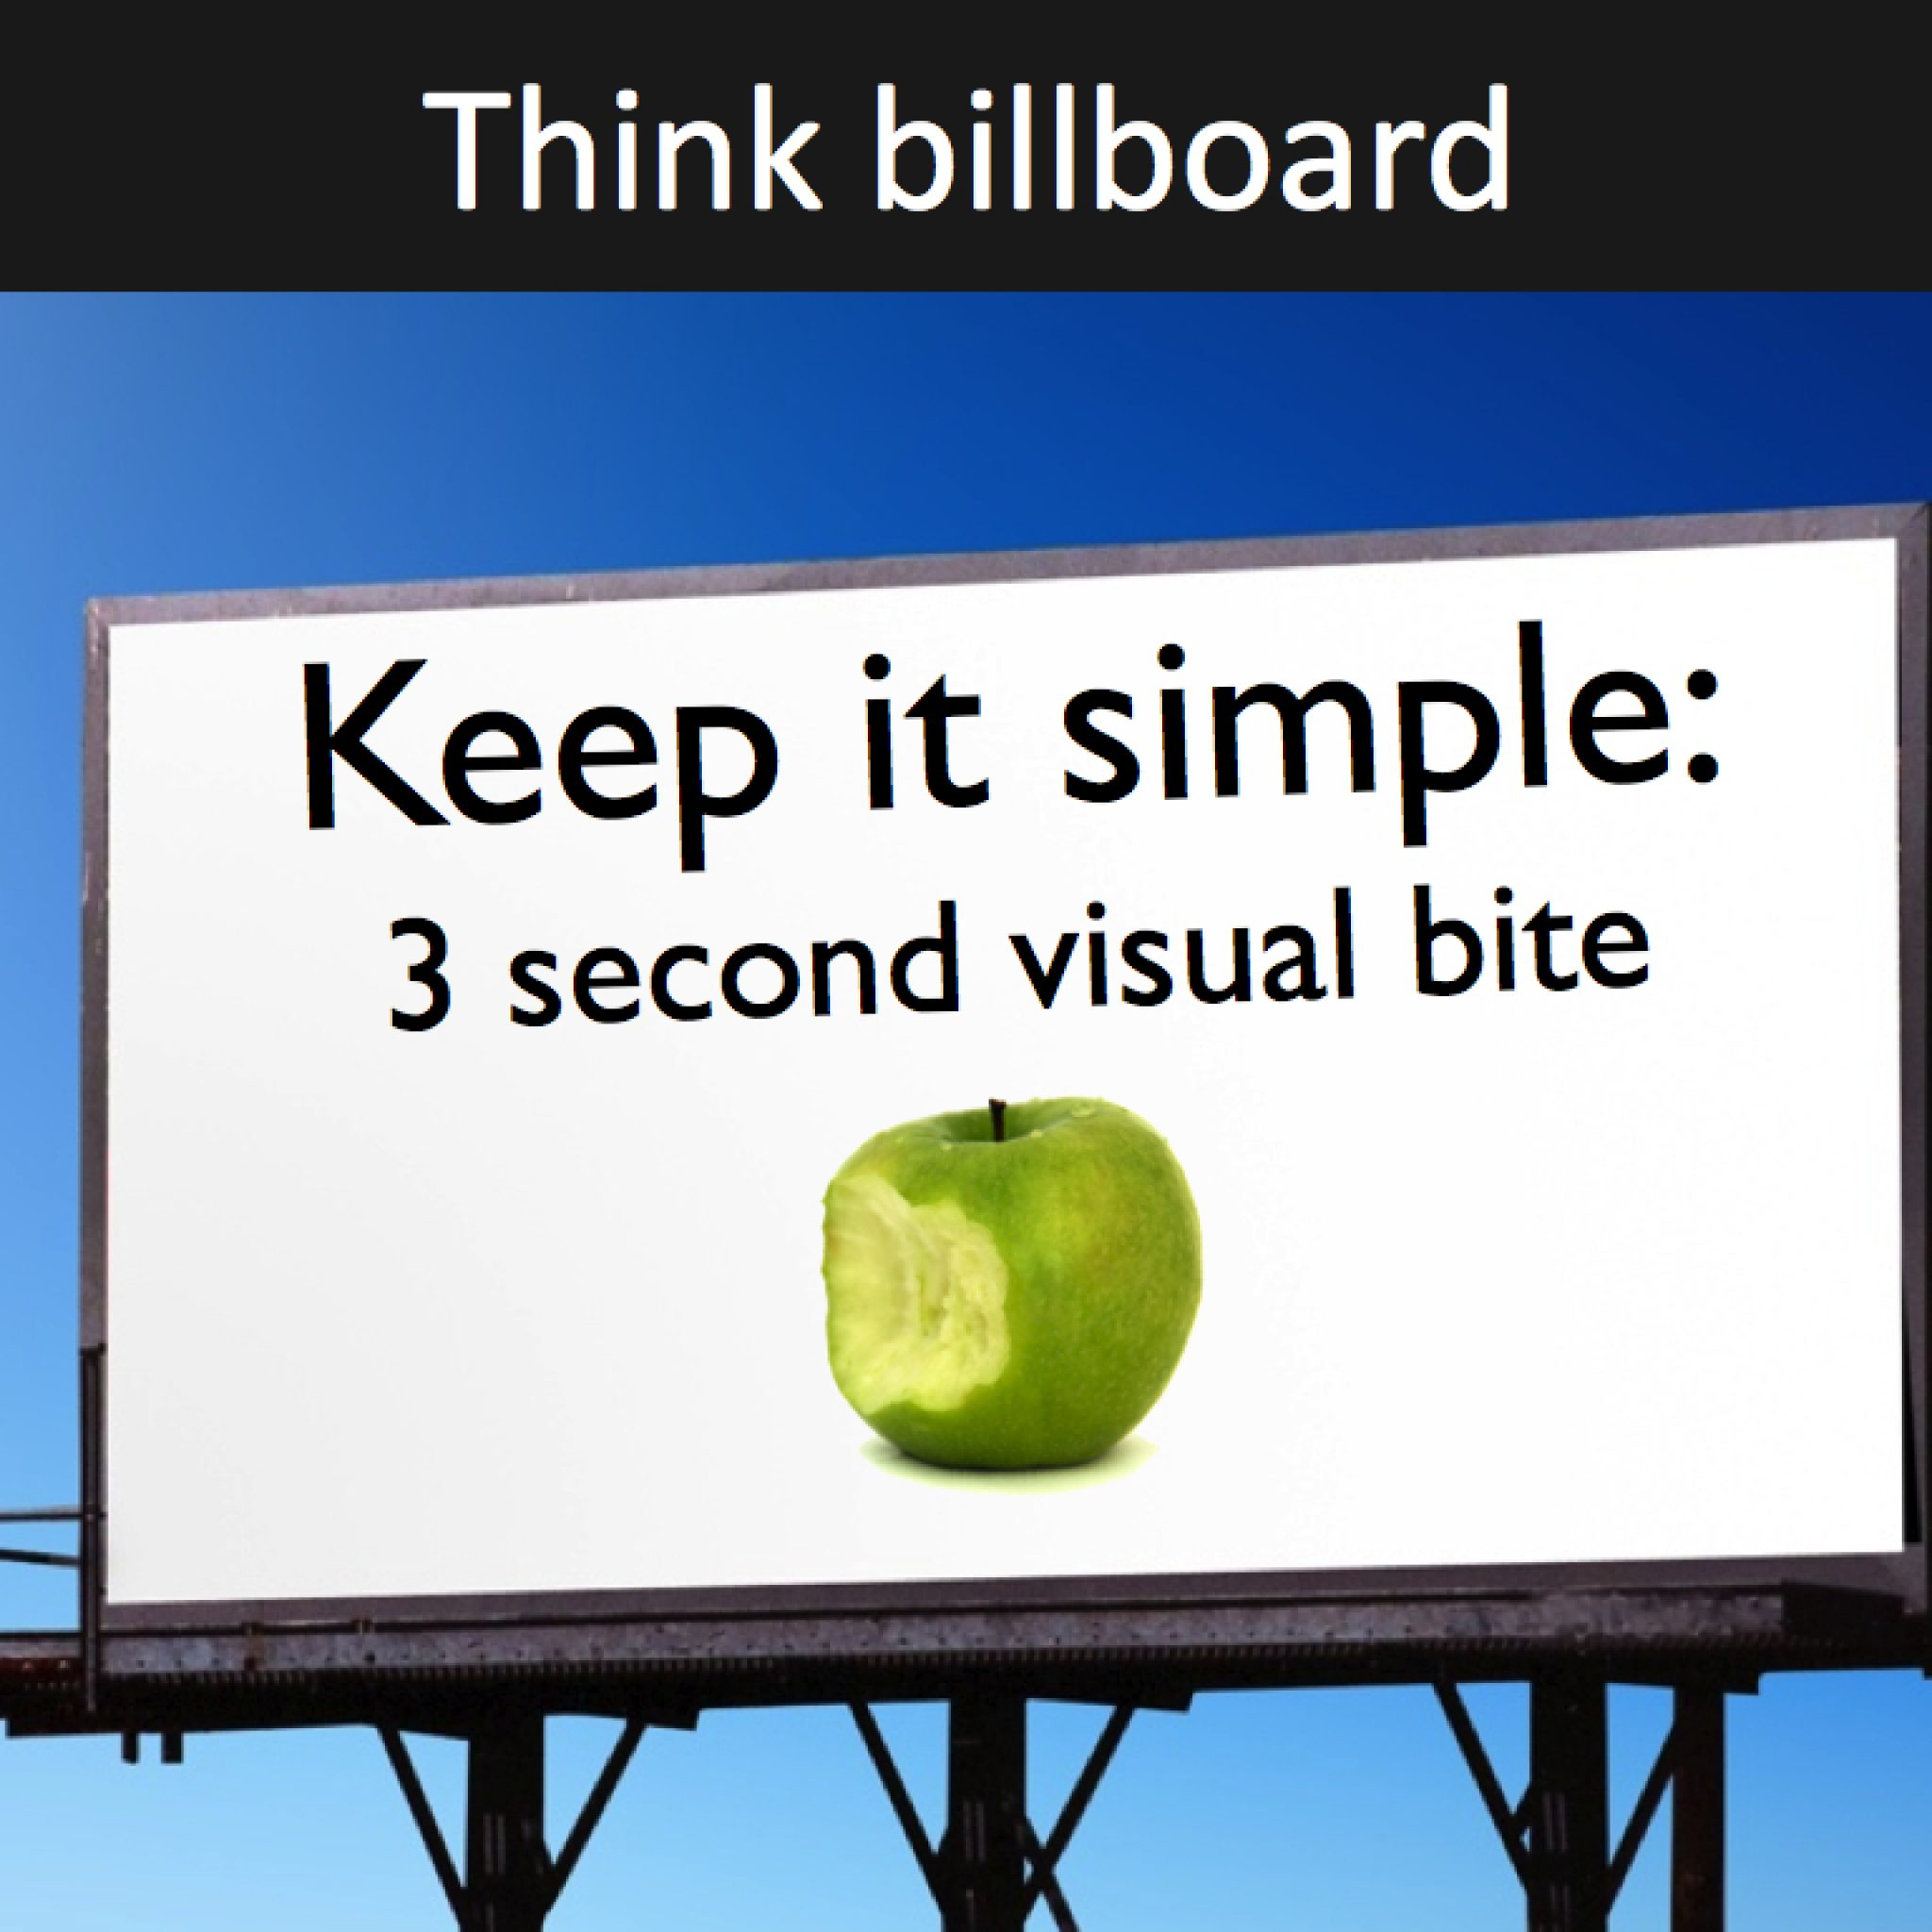 Think billboard in slide design